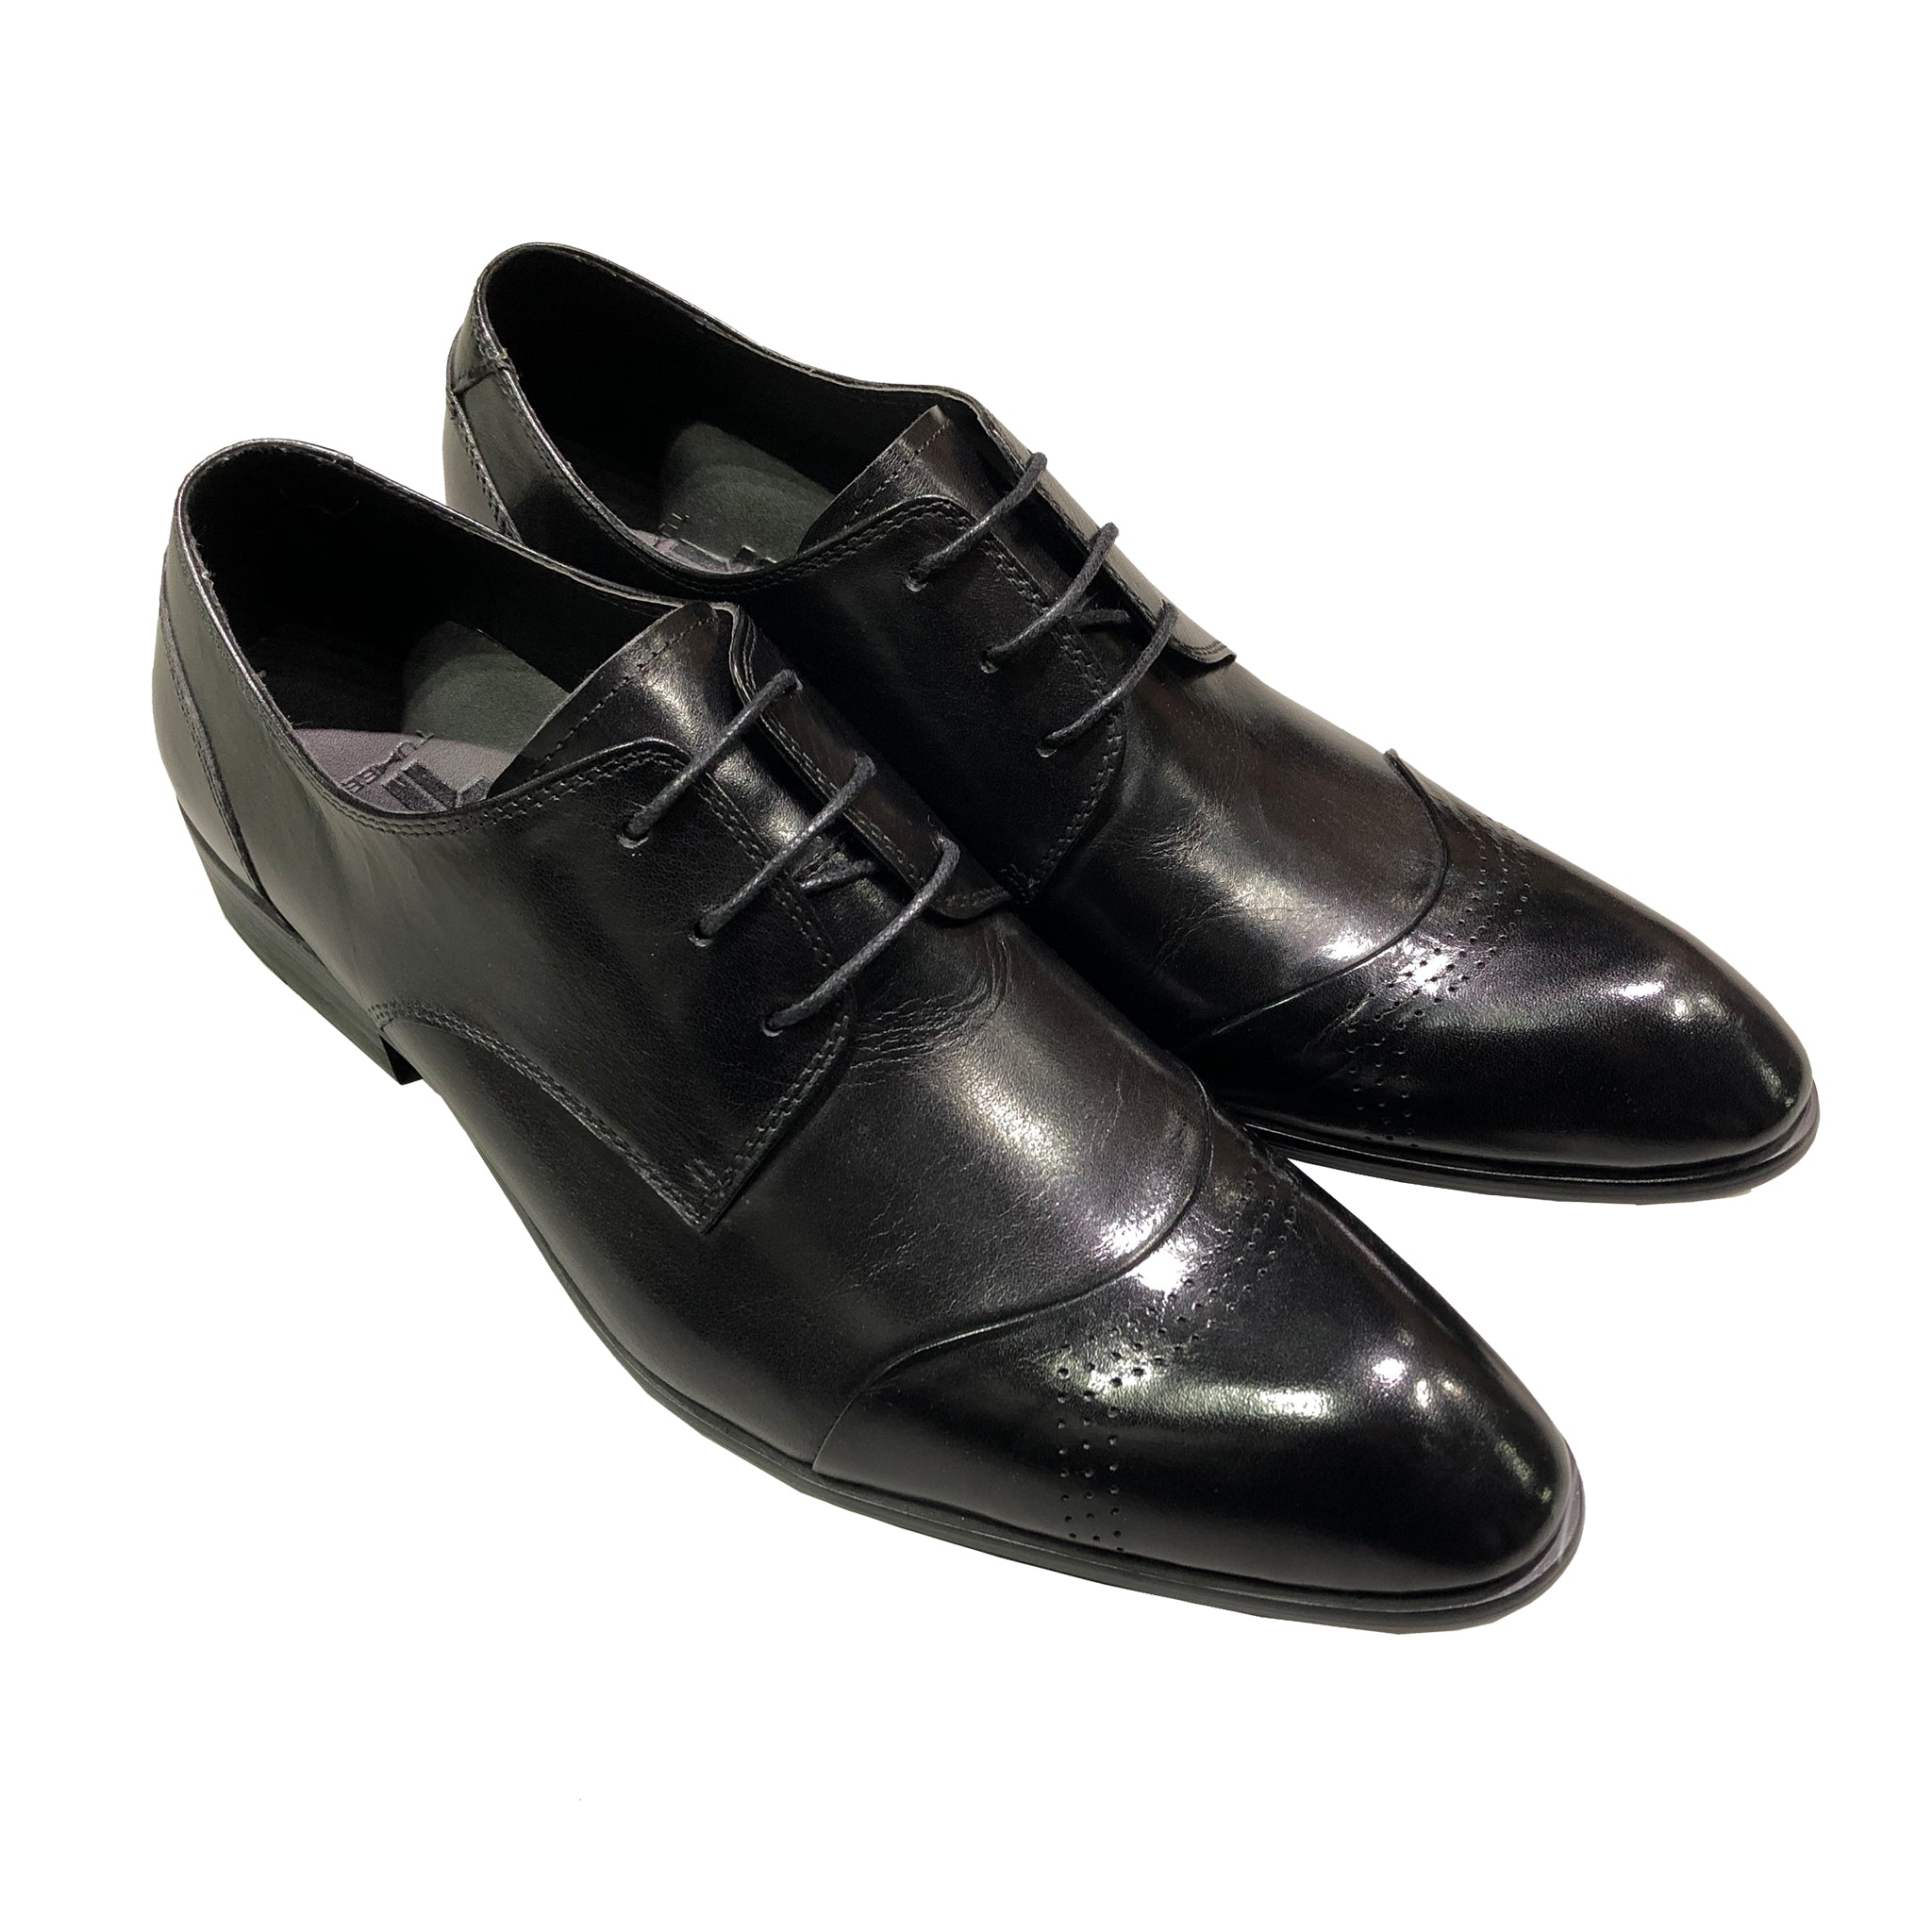 Black Leather Derby Lace-up Shoes